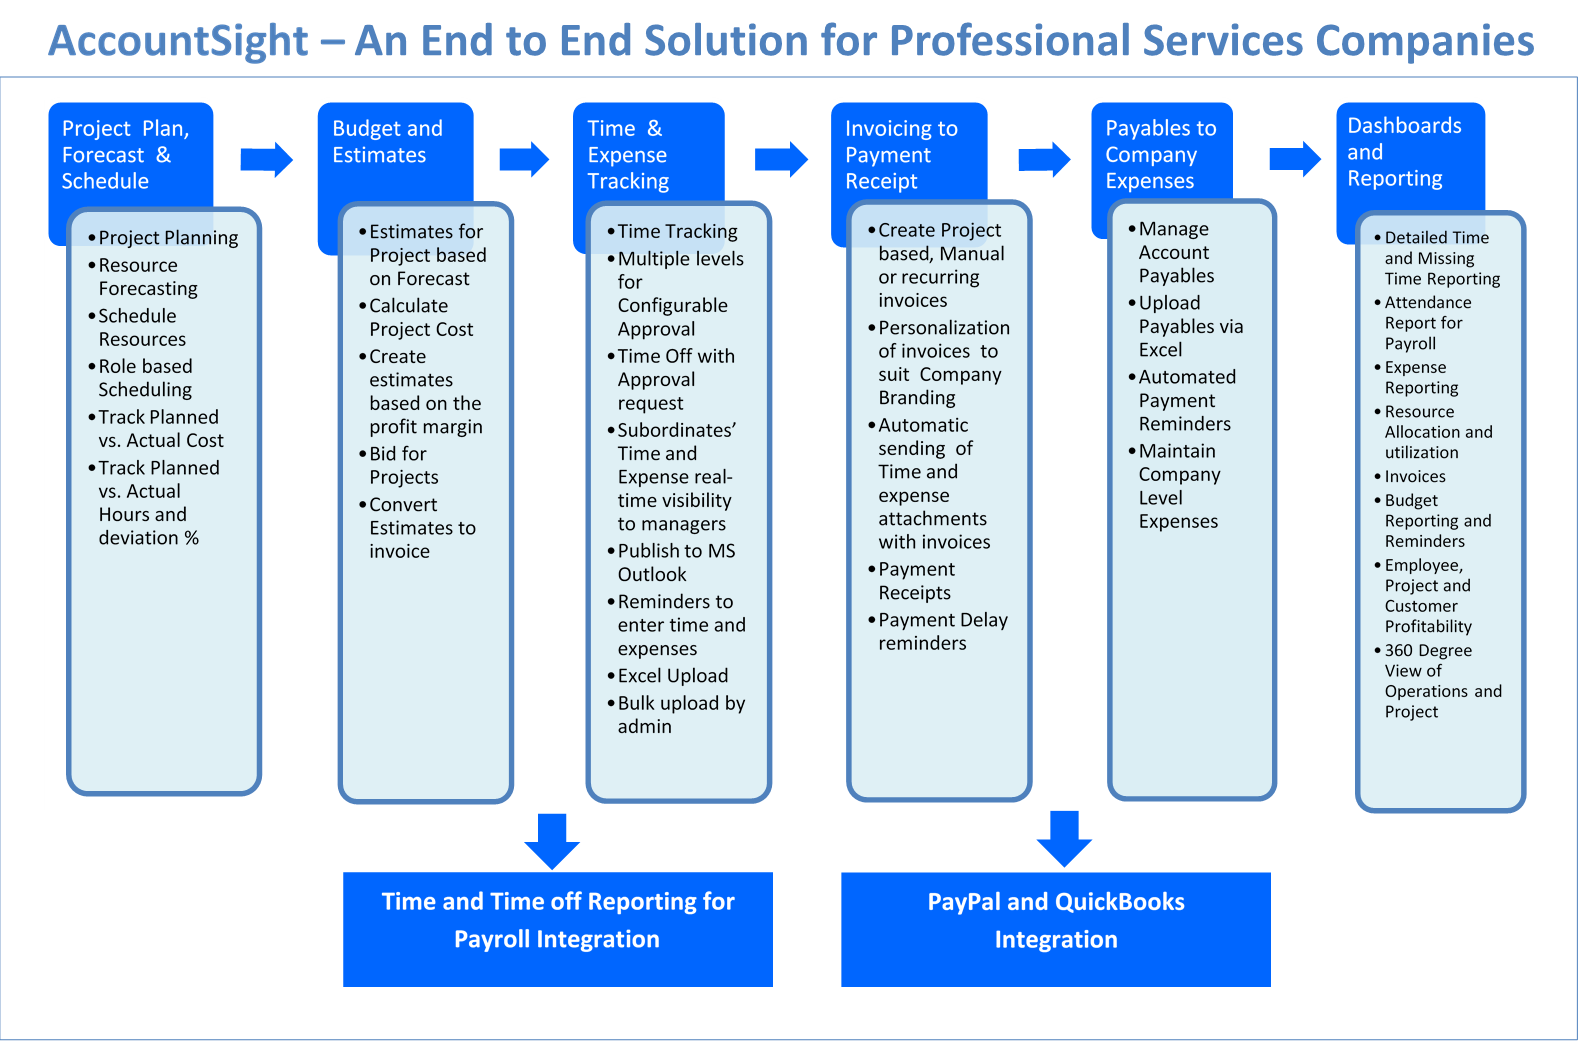 AccountSight Solution Overview